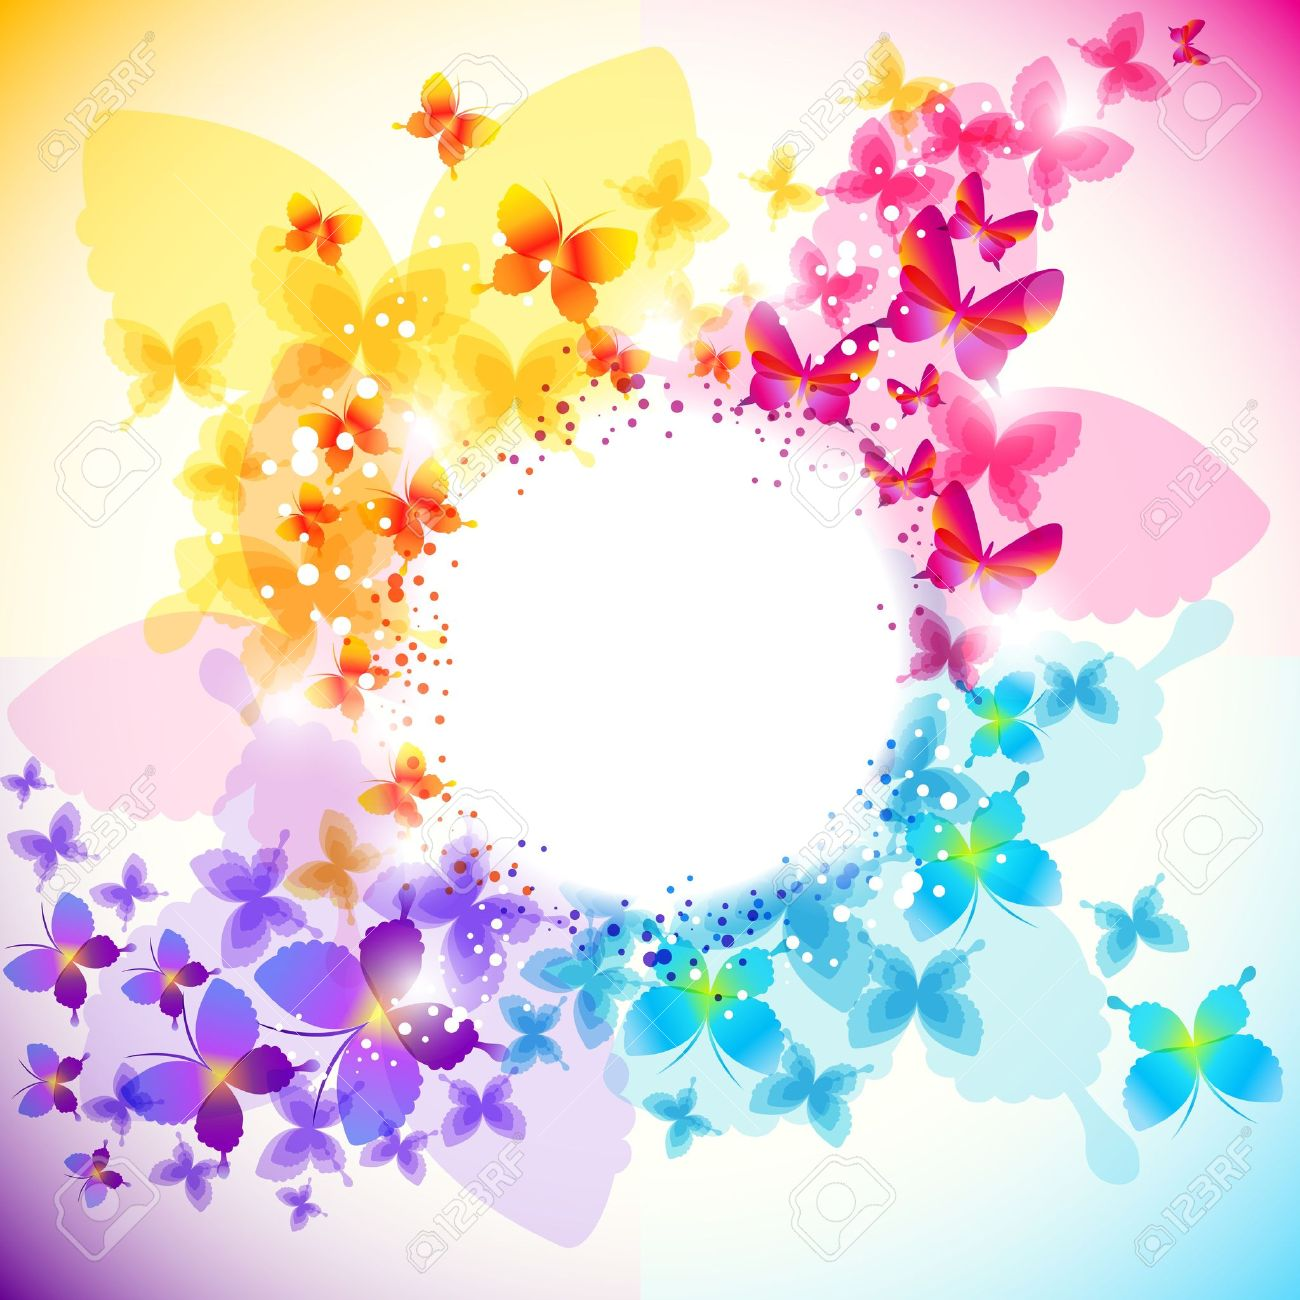 Elegant butterfly background with space for text.